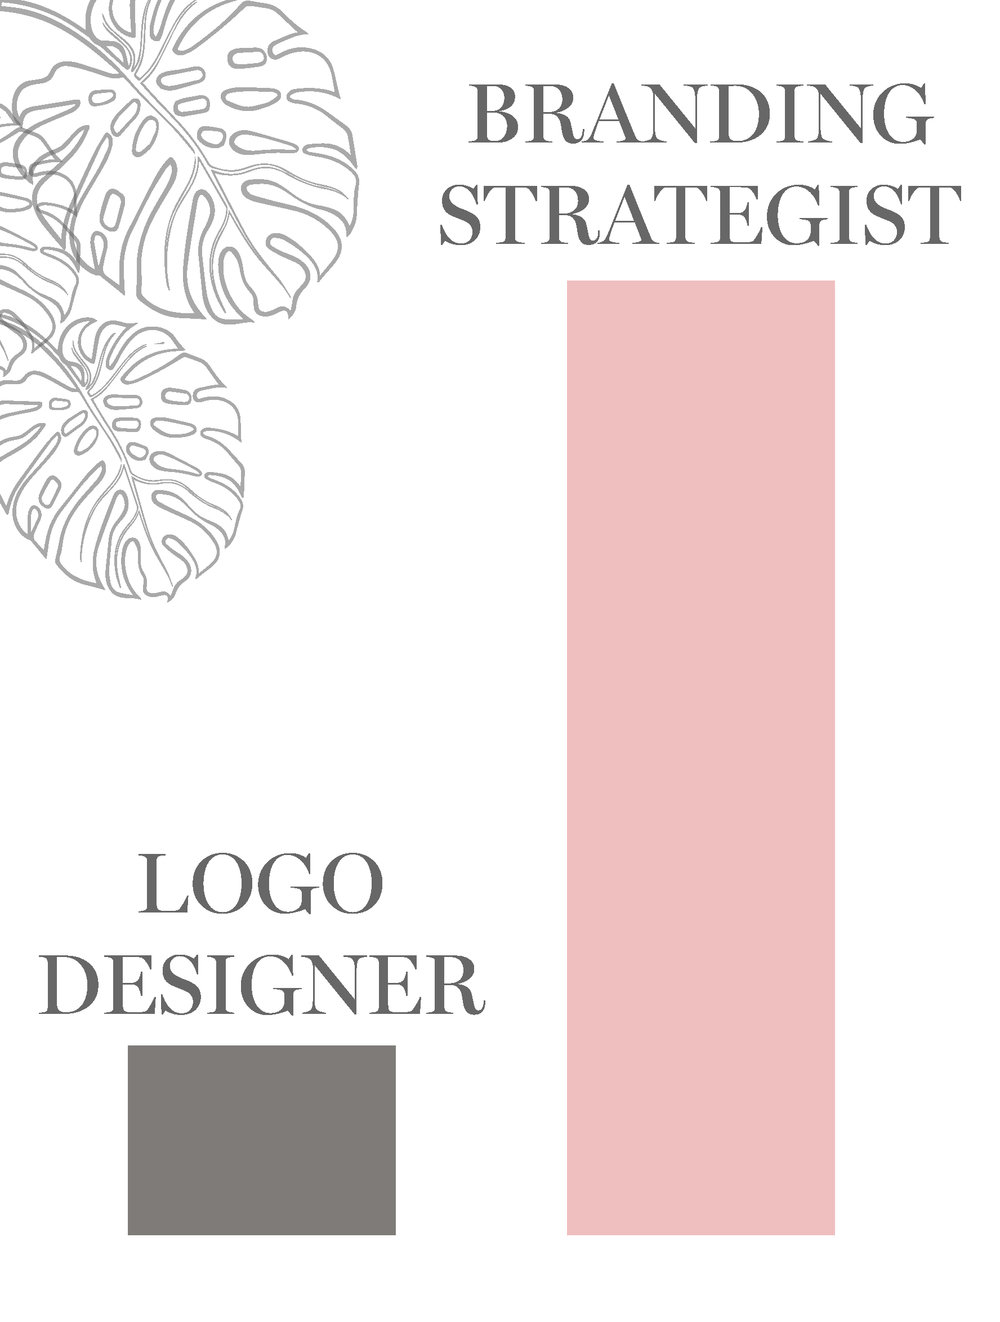 Should You Hire a Logo Designer or Branding Strategist?